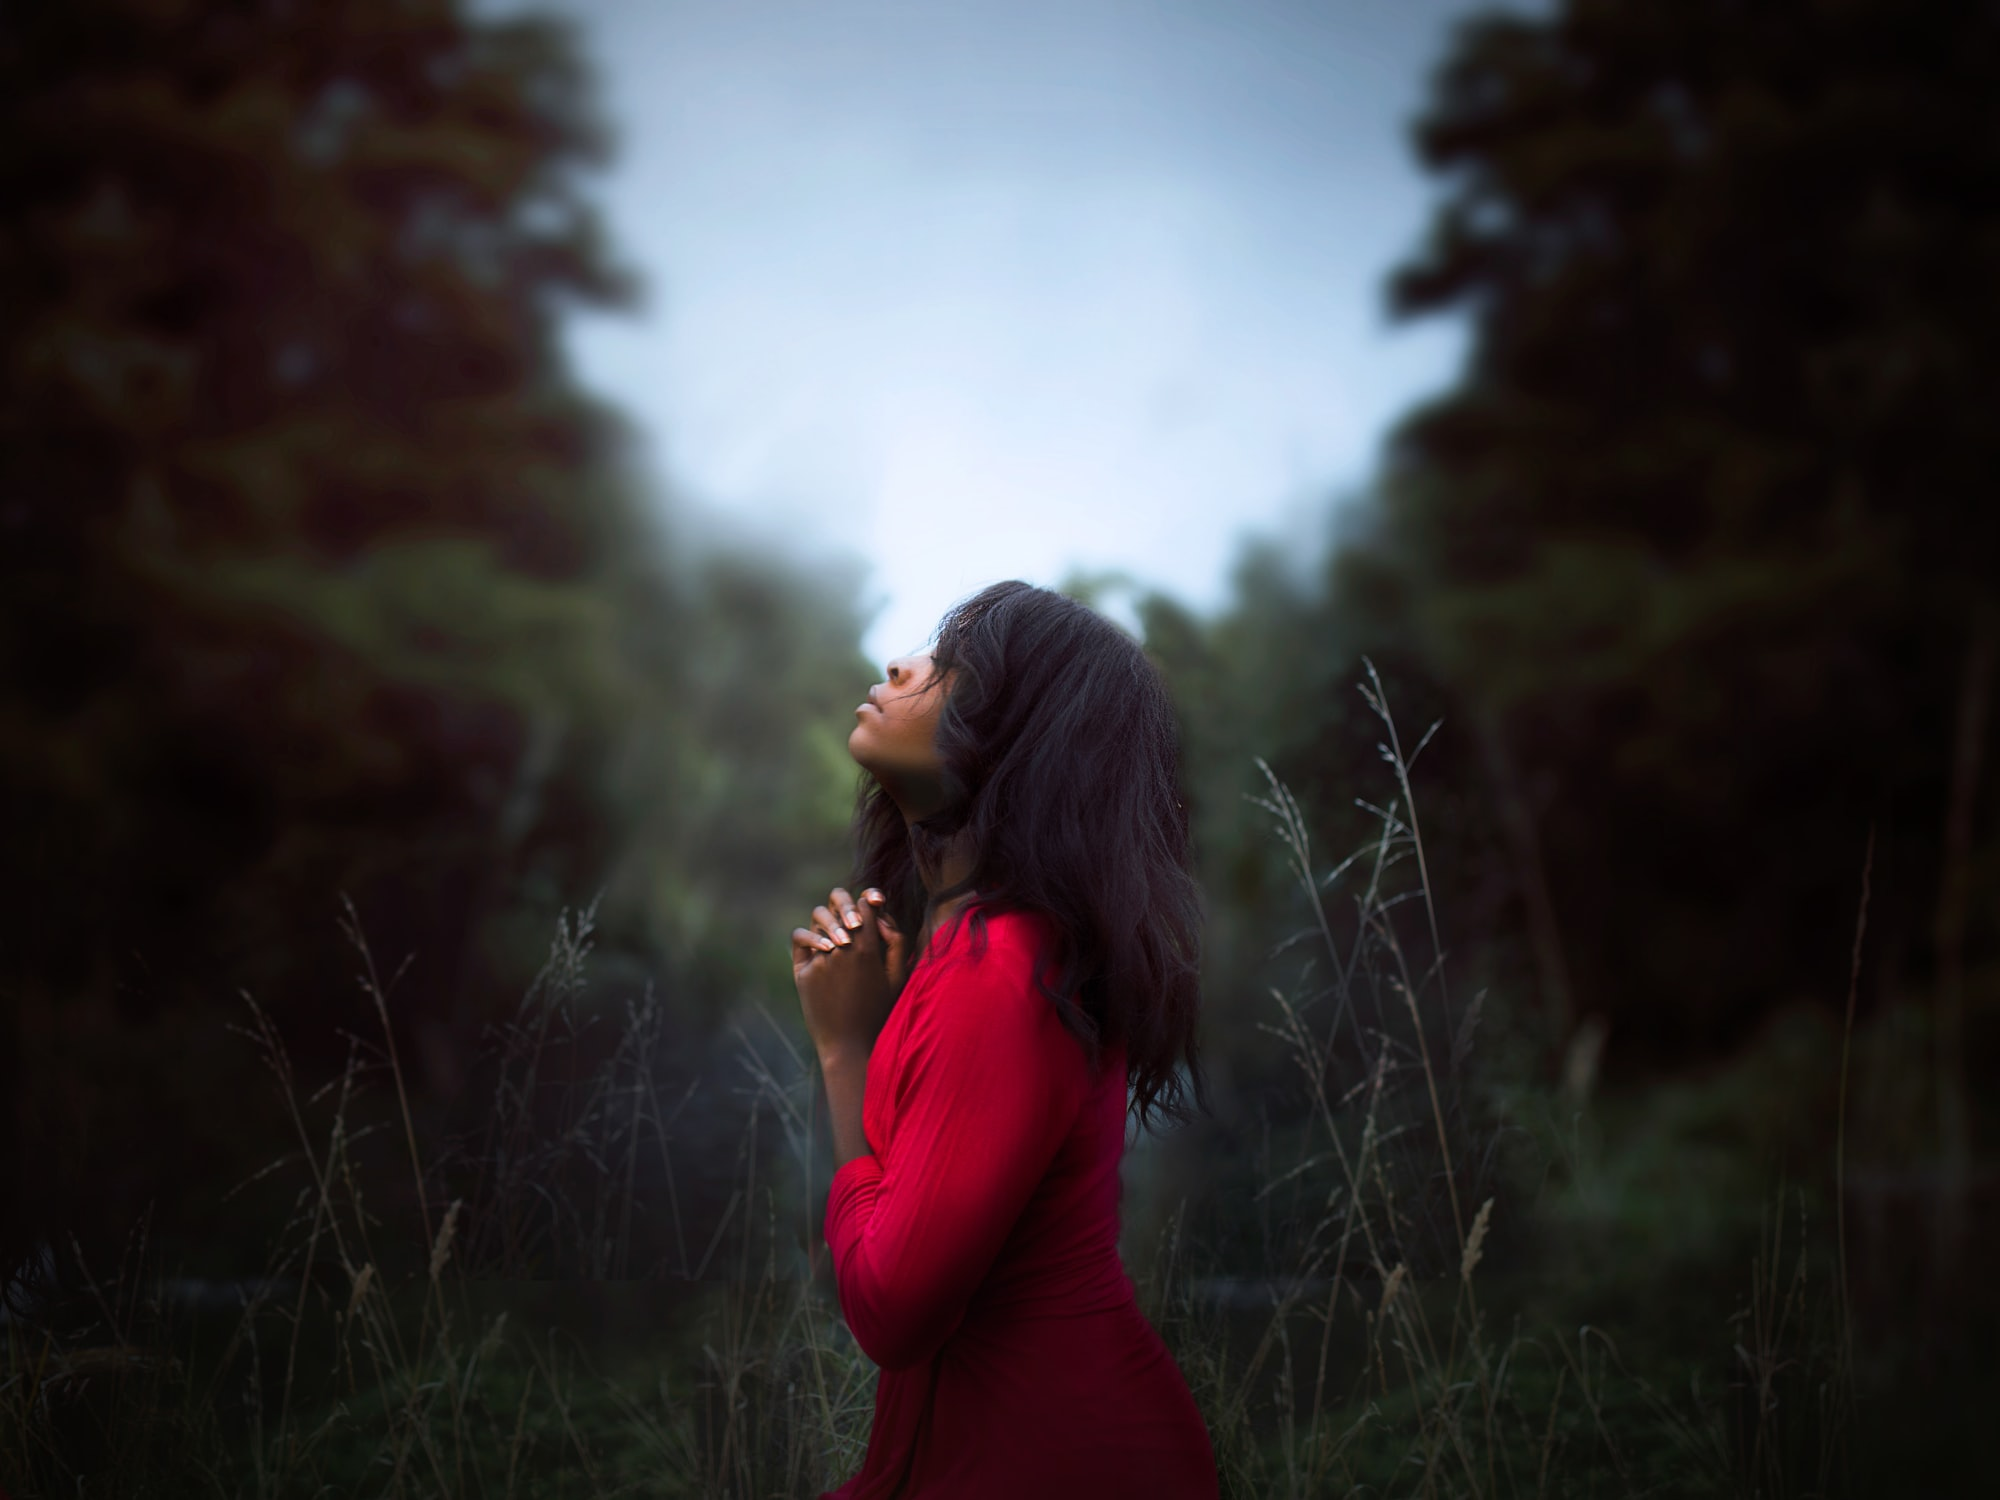 Woman holding her hands in prayer and looking up.